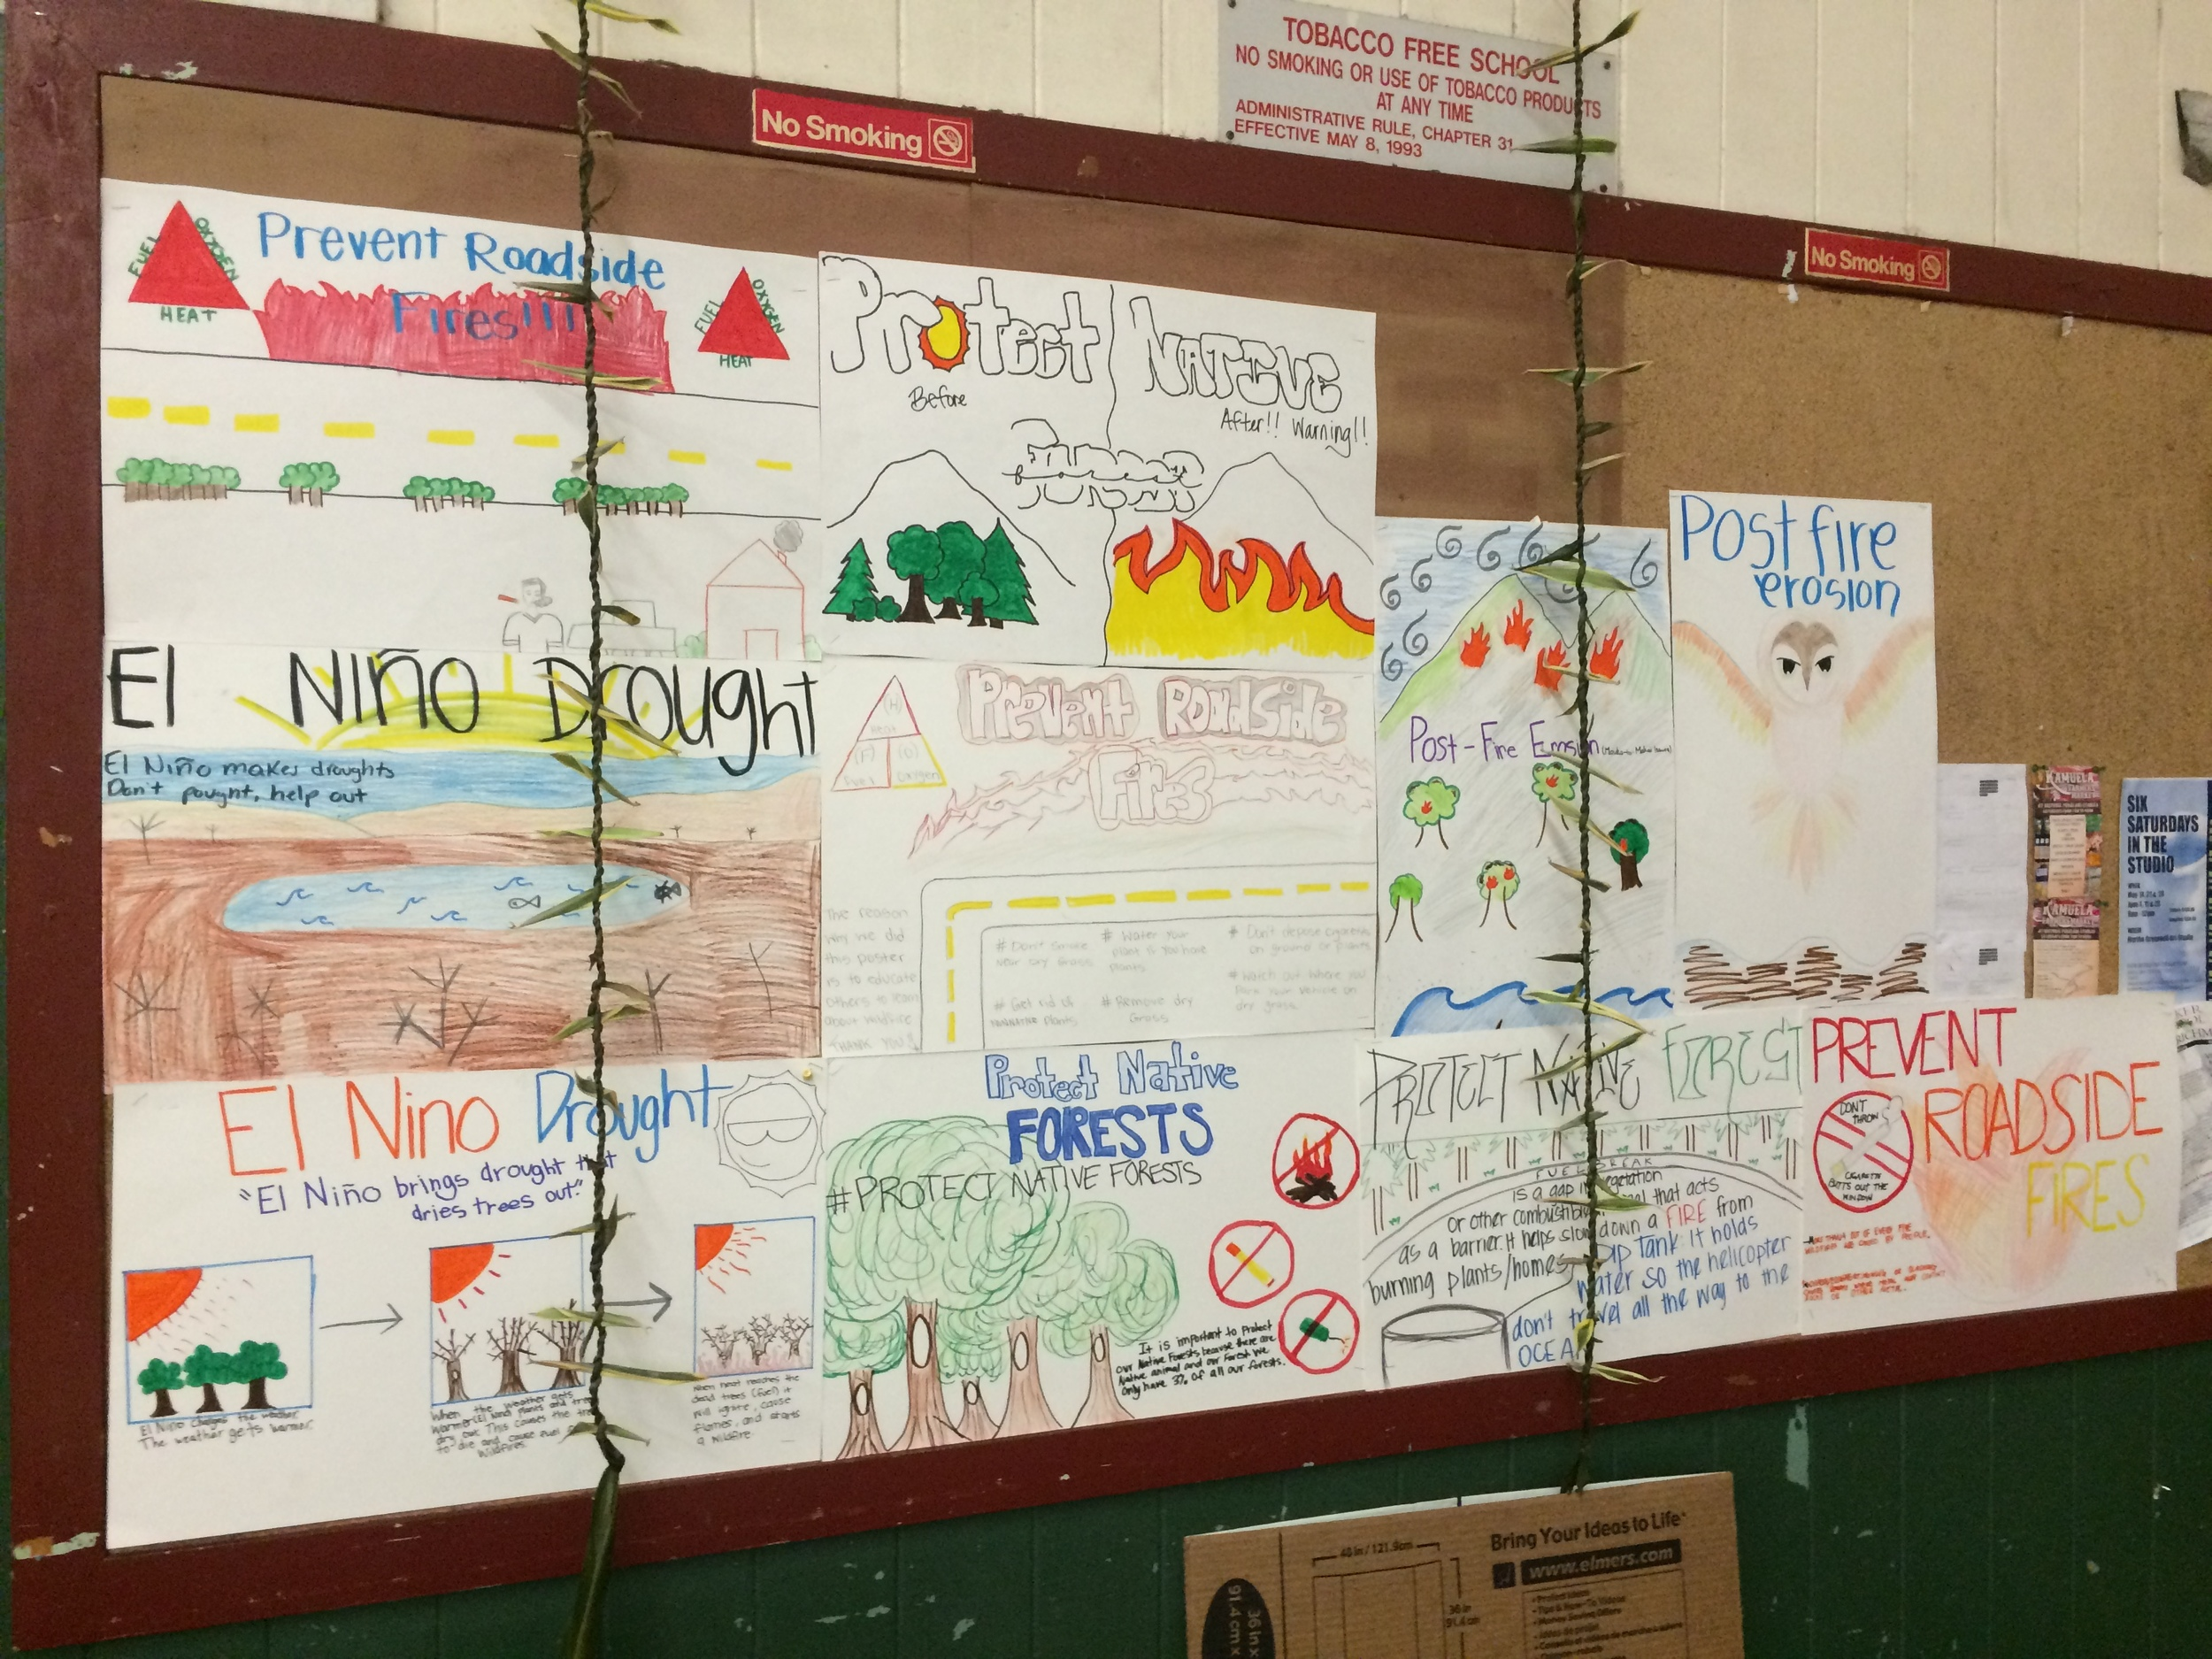 Fire prevention signs made by students at Waimea Middle School.